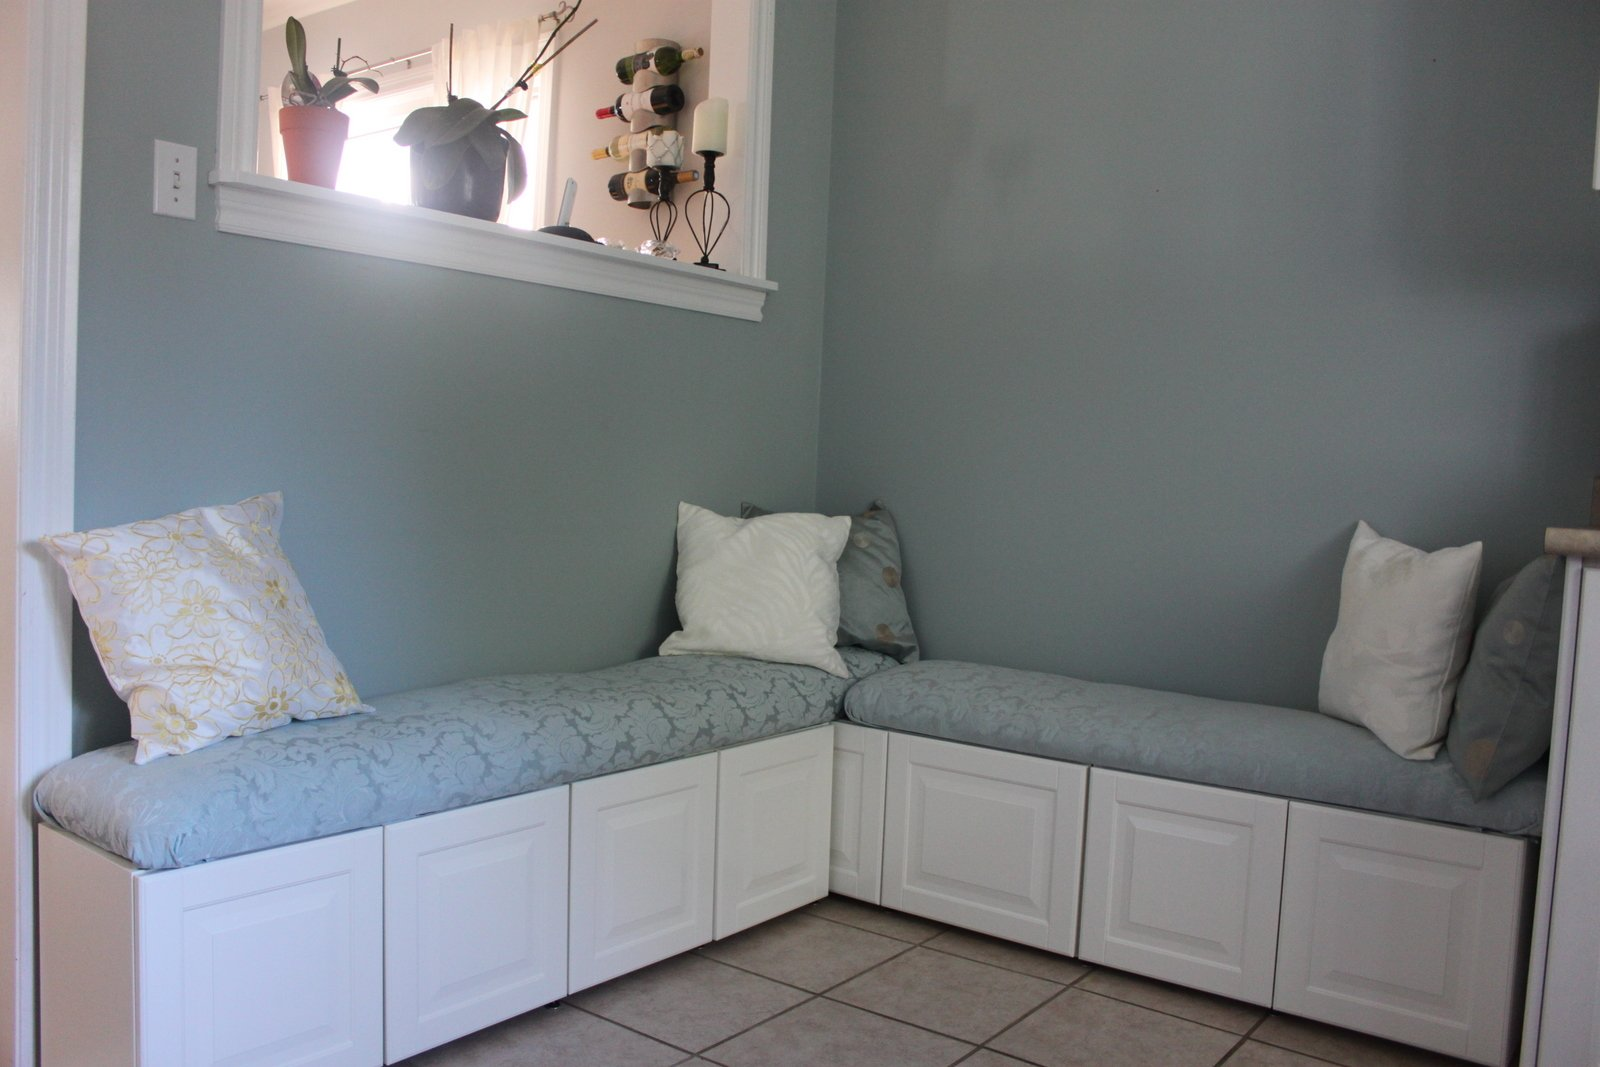 diy ikea hack banquette from lidingo cabinets banquette. Black Bedroom Furniture Sets. Home Design Ideas